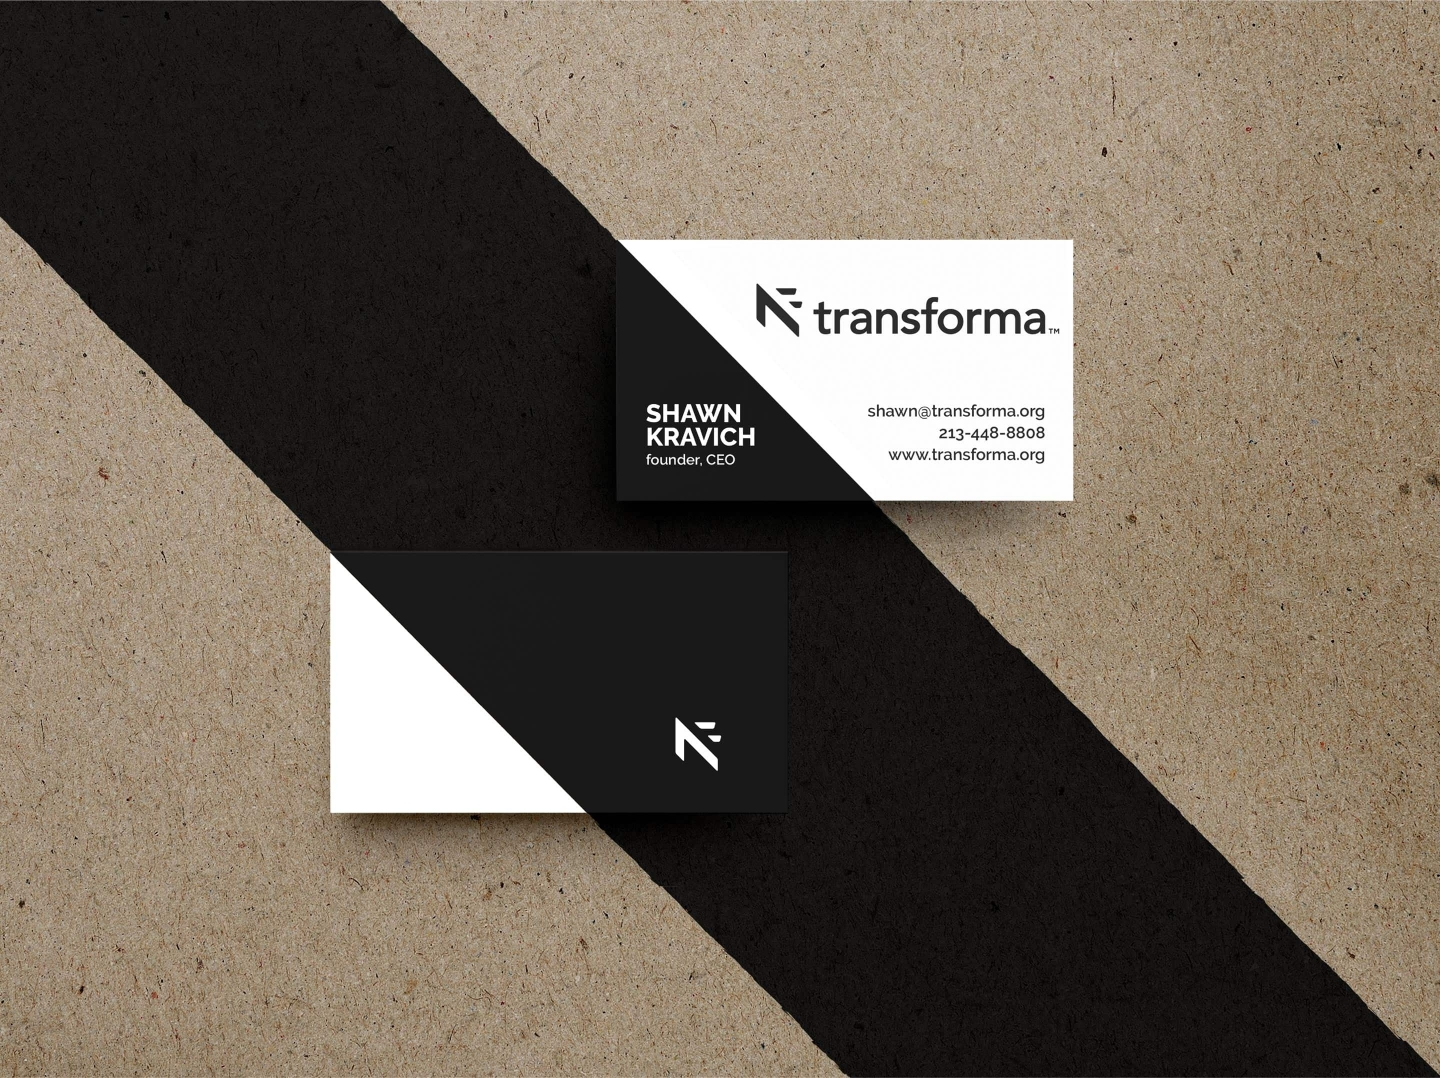 Transforma business cards on craft paper with stripe